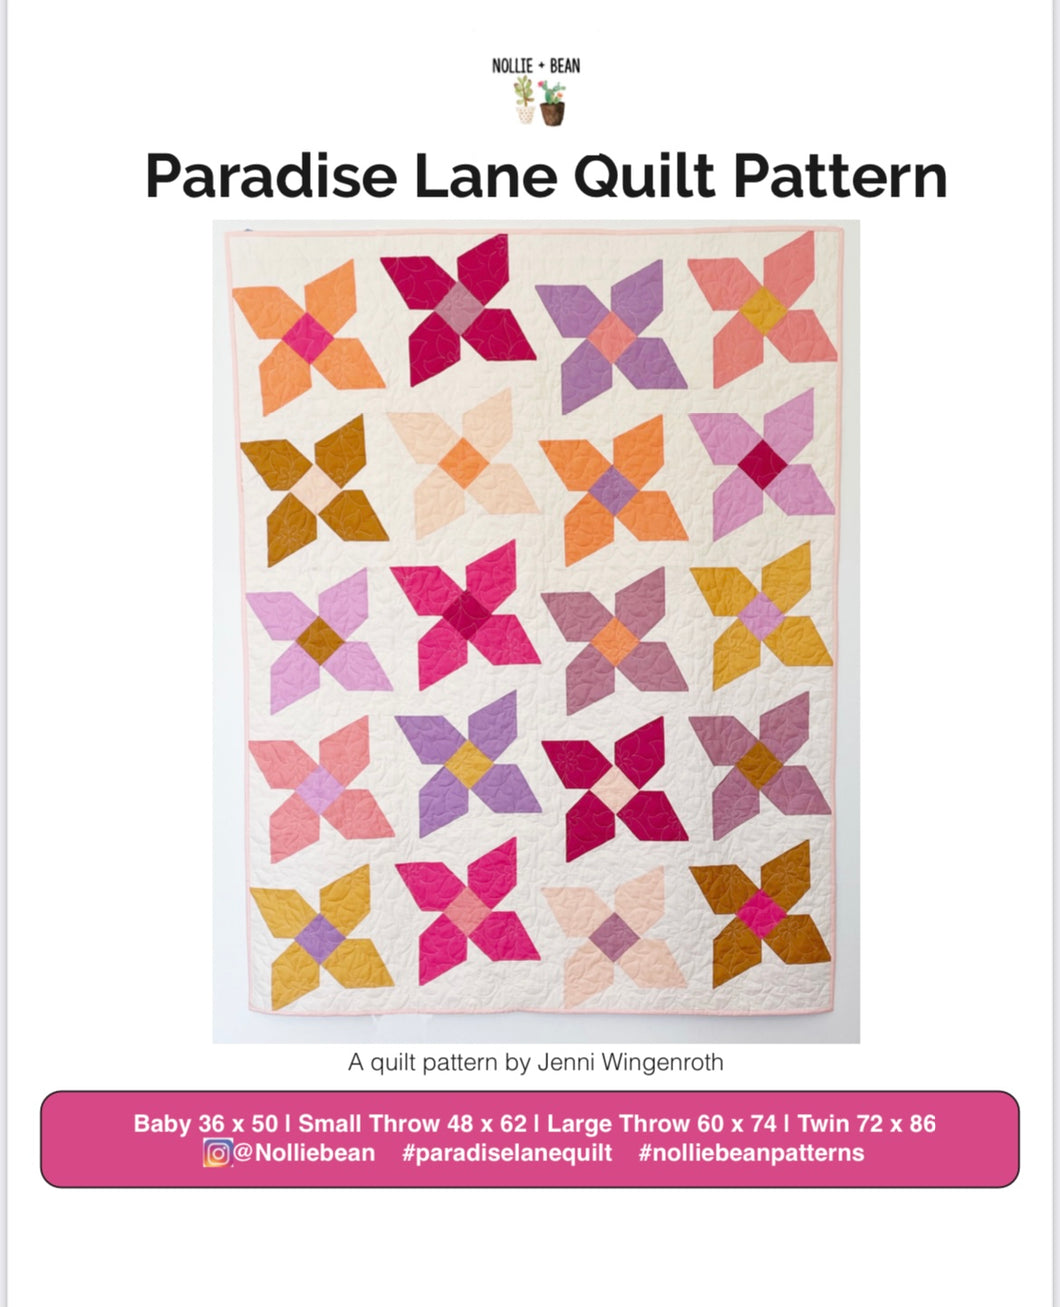 Paradise Lane Quilt Pattern by Nollie + Bean